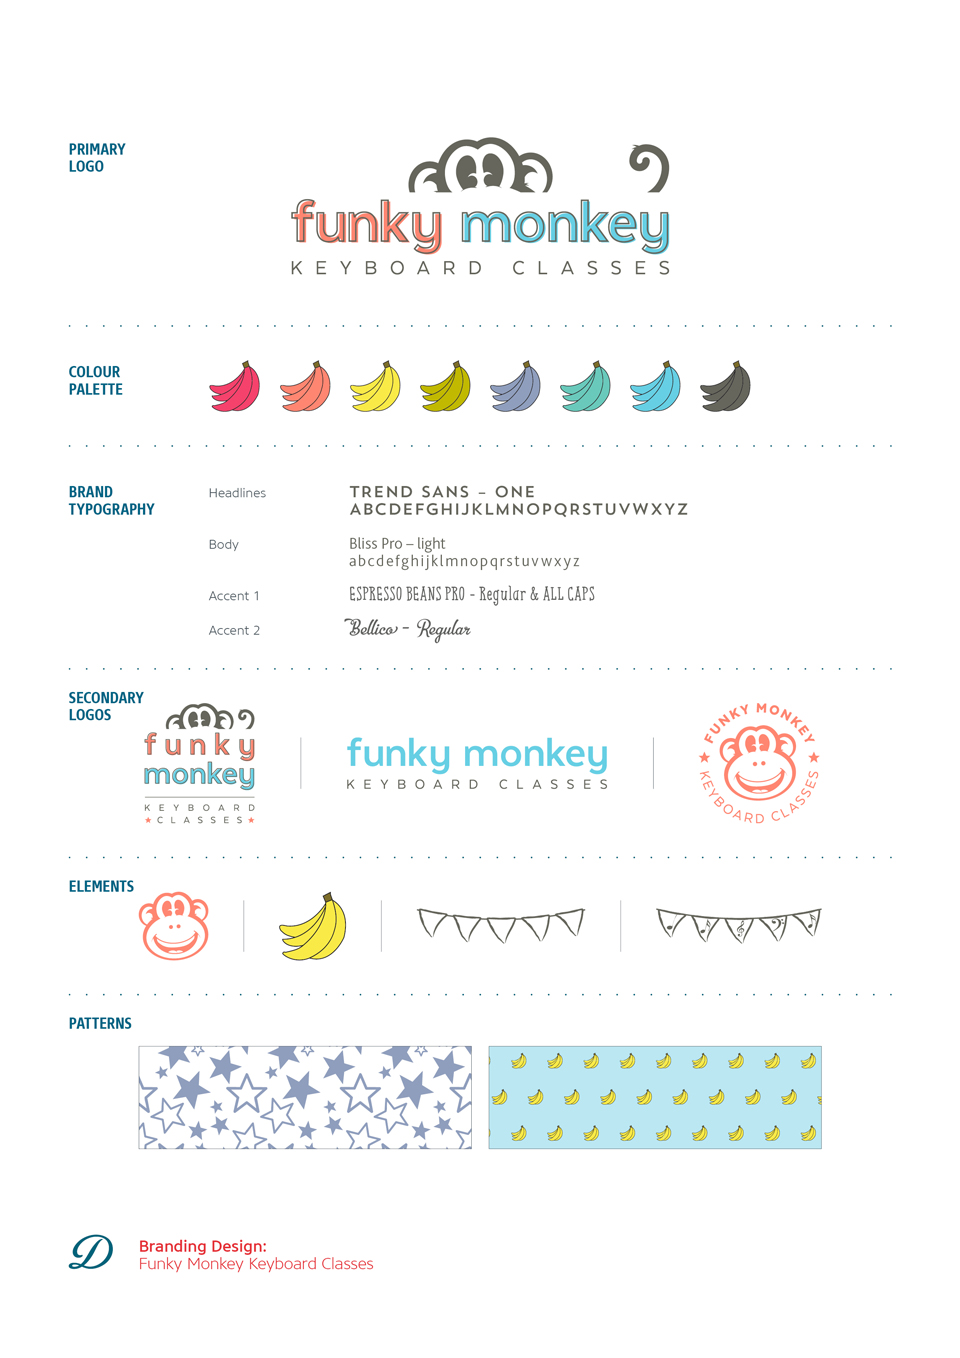 Funky Monkey Keyboard Classes logo design, branding and brand styling by Ditto Creative, Kent